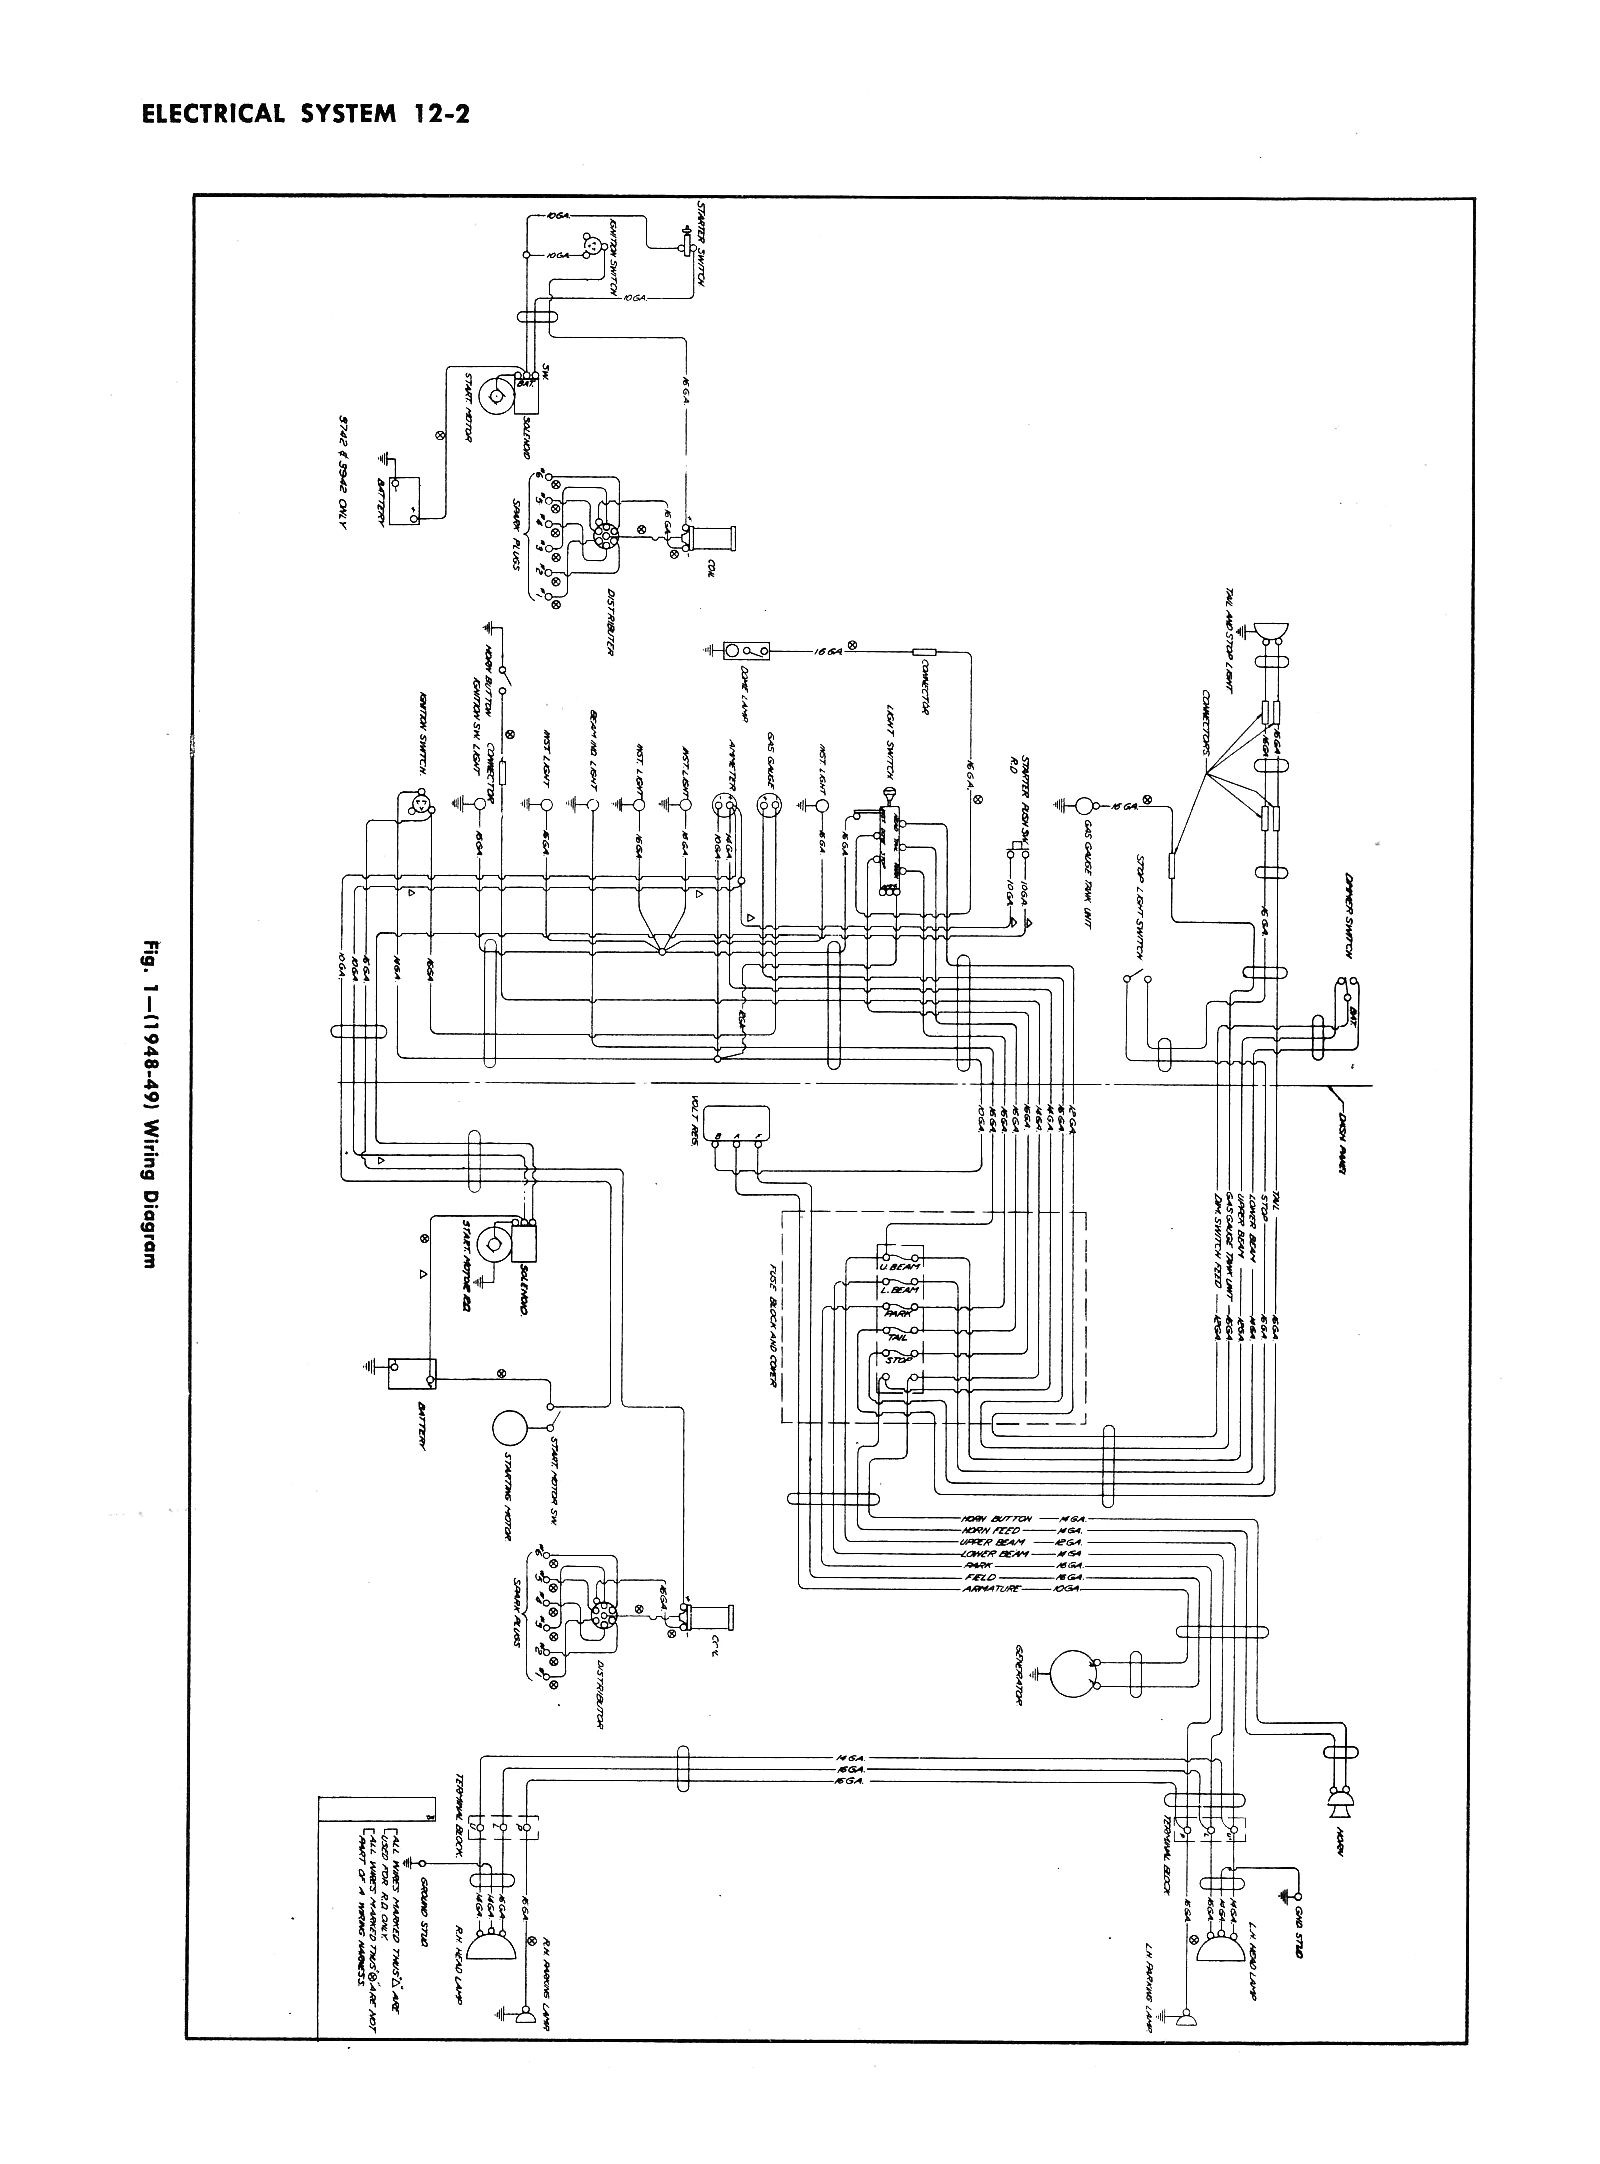 1948 dodge pickup wiring diagram chevy wiring diagrams 1977 dodge pickup wiring diagram